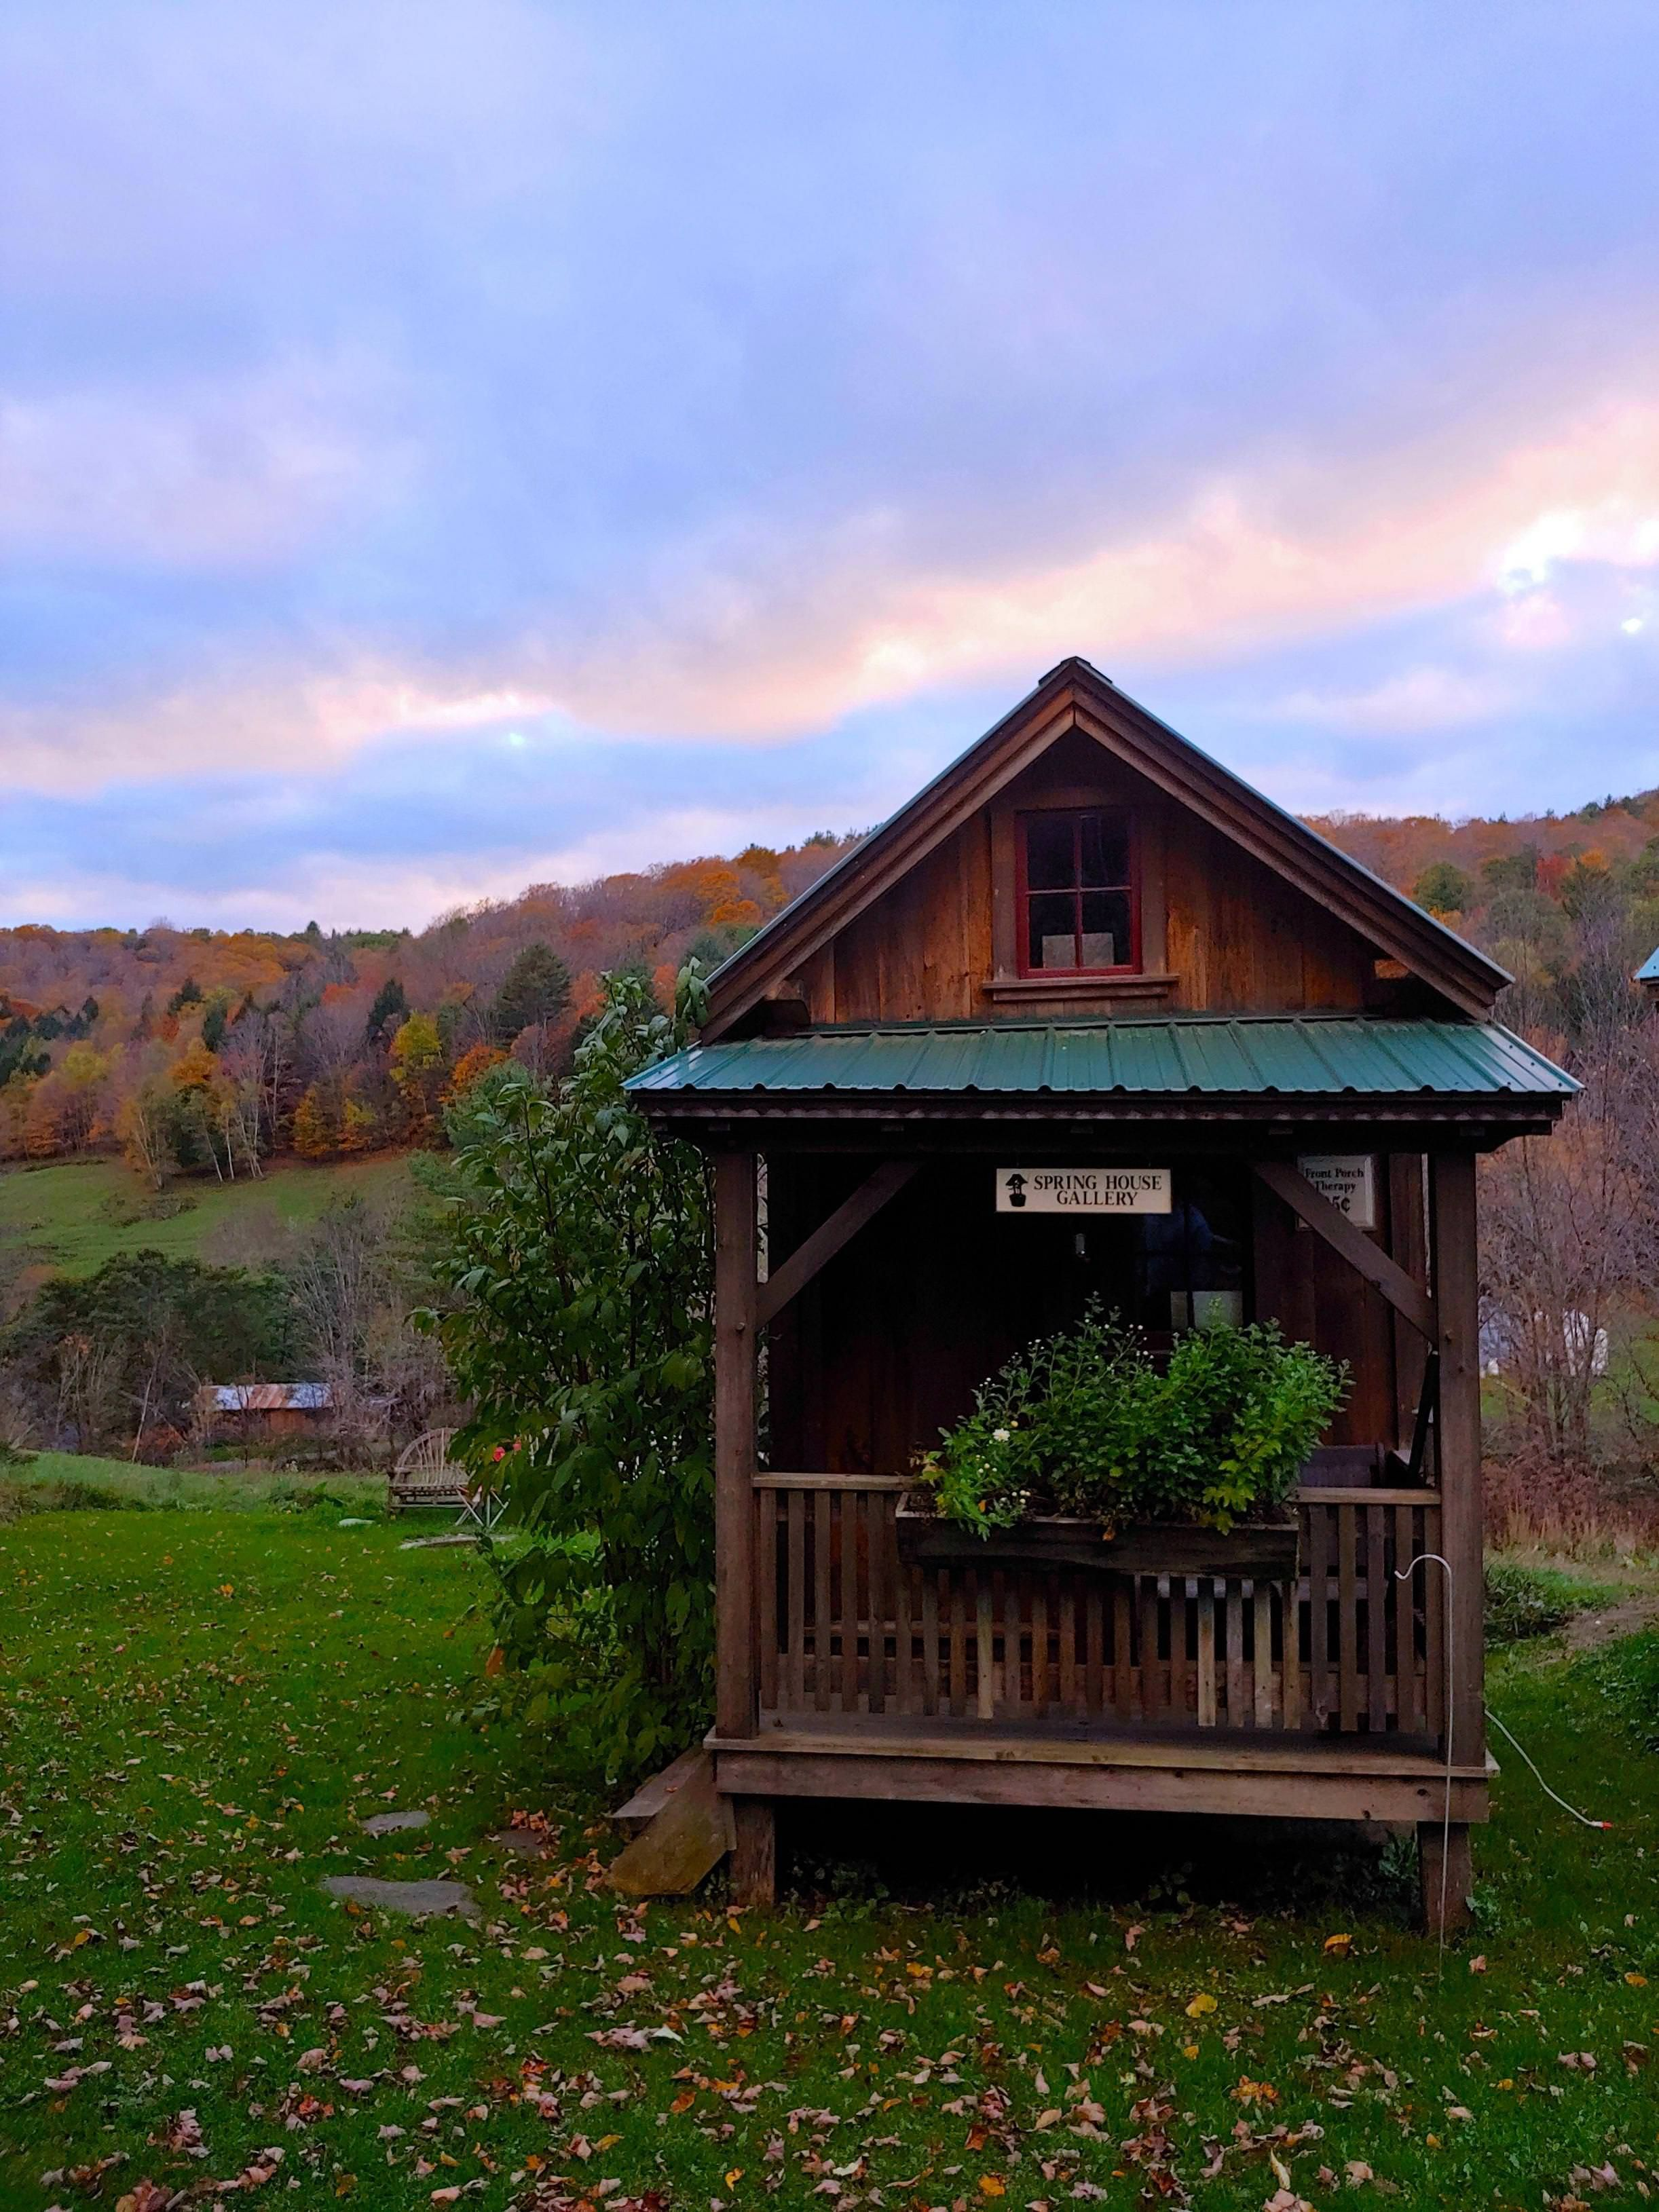 the sweetest coziest cabin for 2 (airbnb) i stayed in up in vt